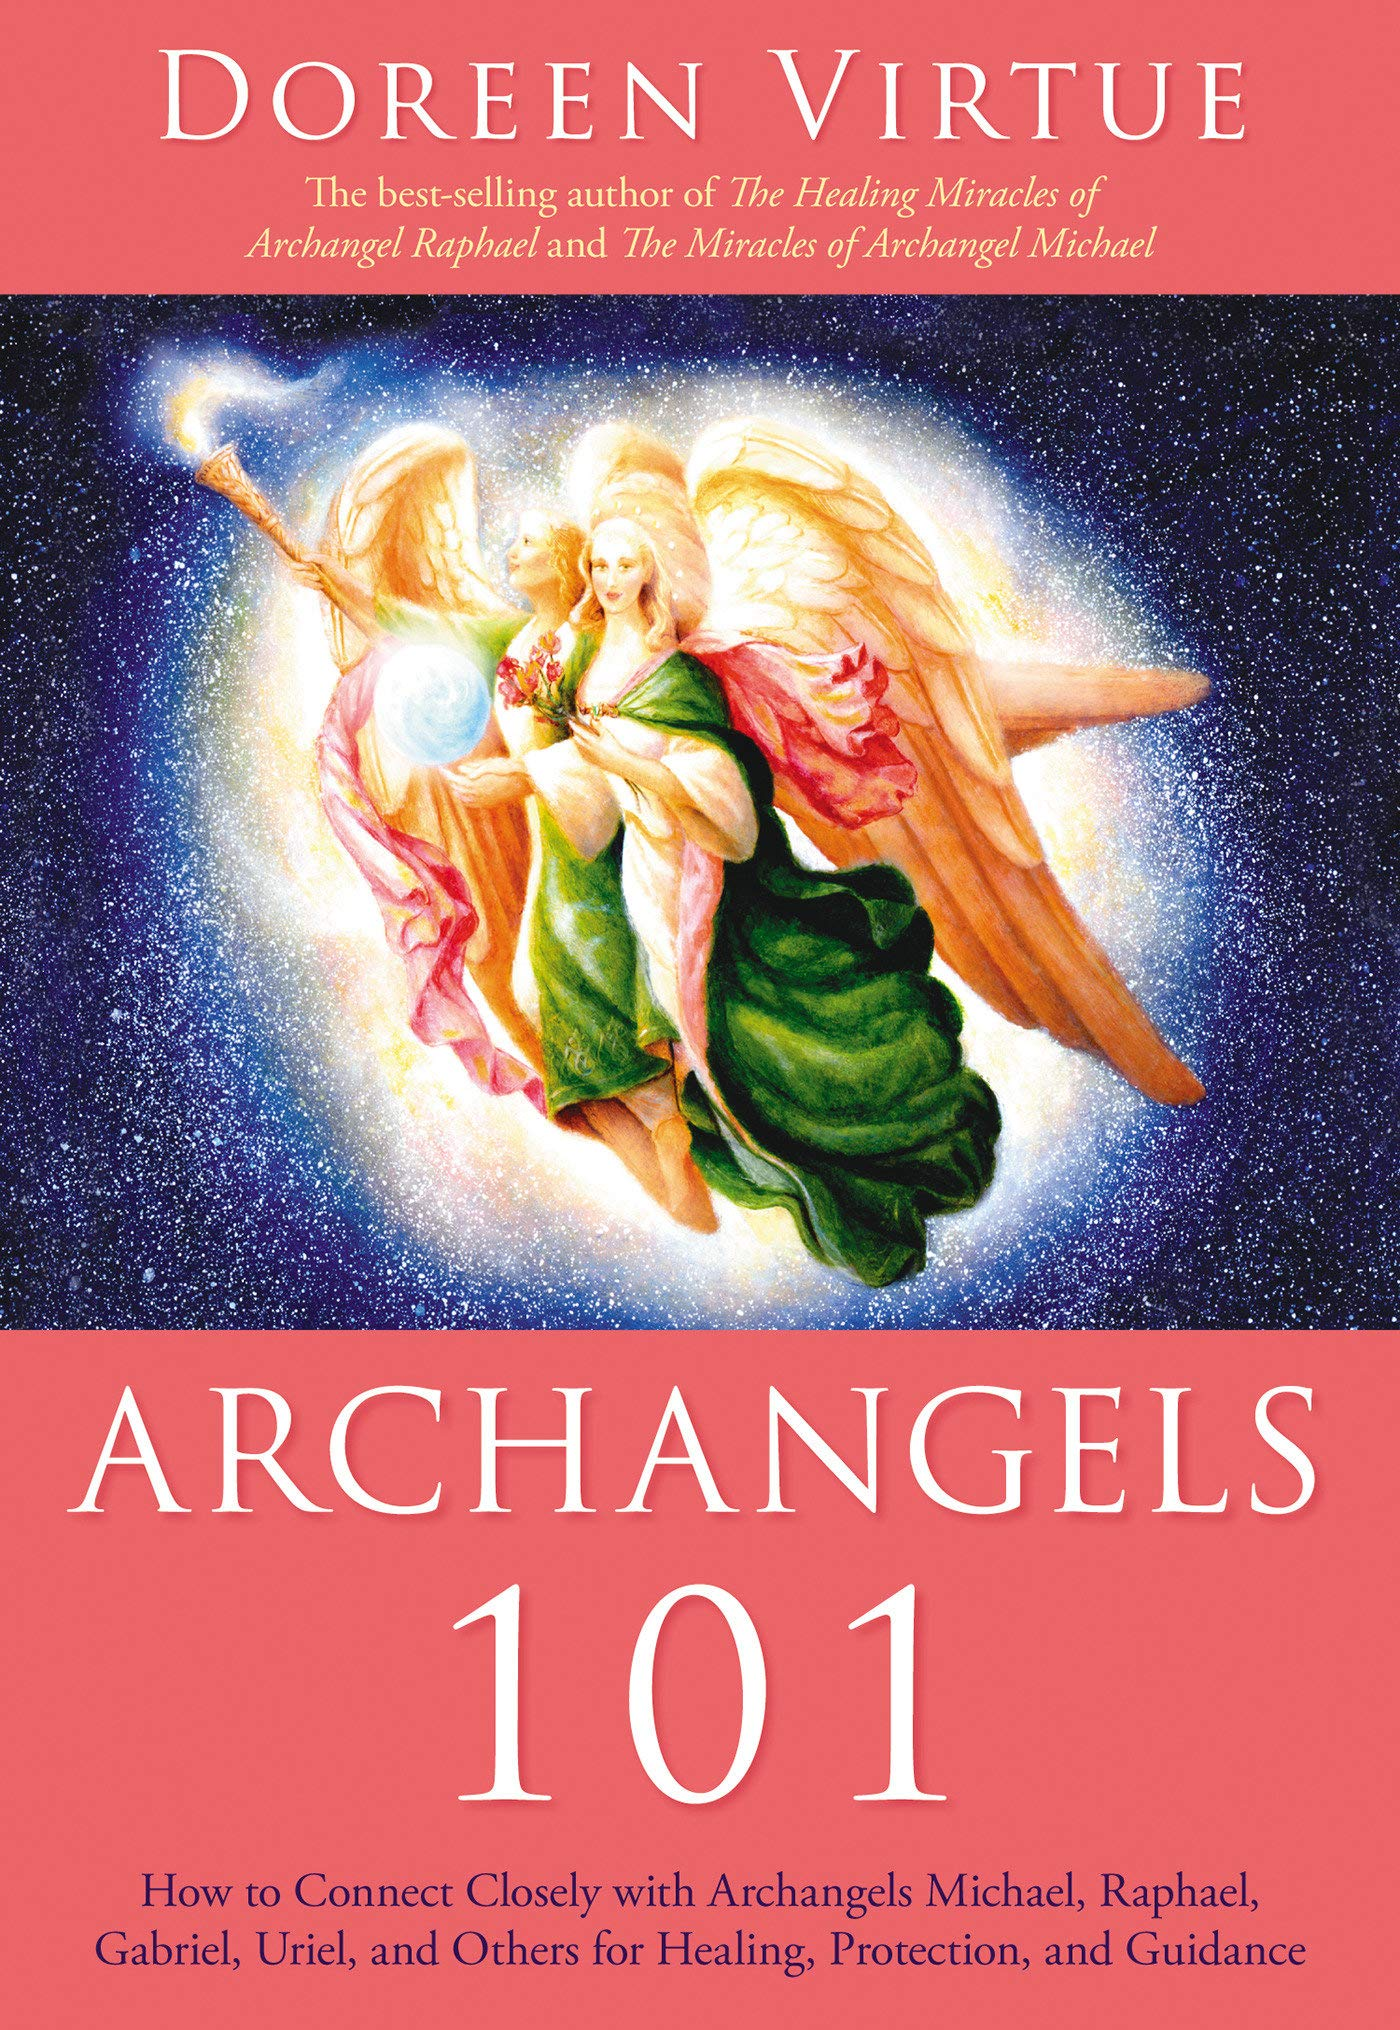 Download Archangels 101: How to Connect Closely with Archangels Michael, Raphael, Gabriel, Uriel, and Others for Healing, Protection, and Guidance pdf epub